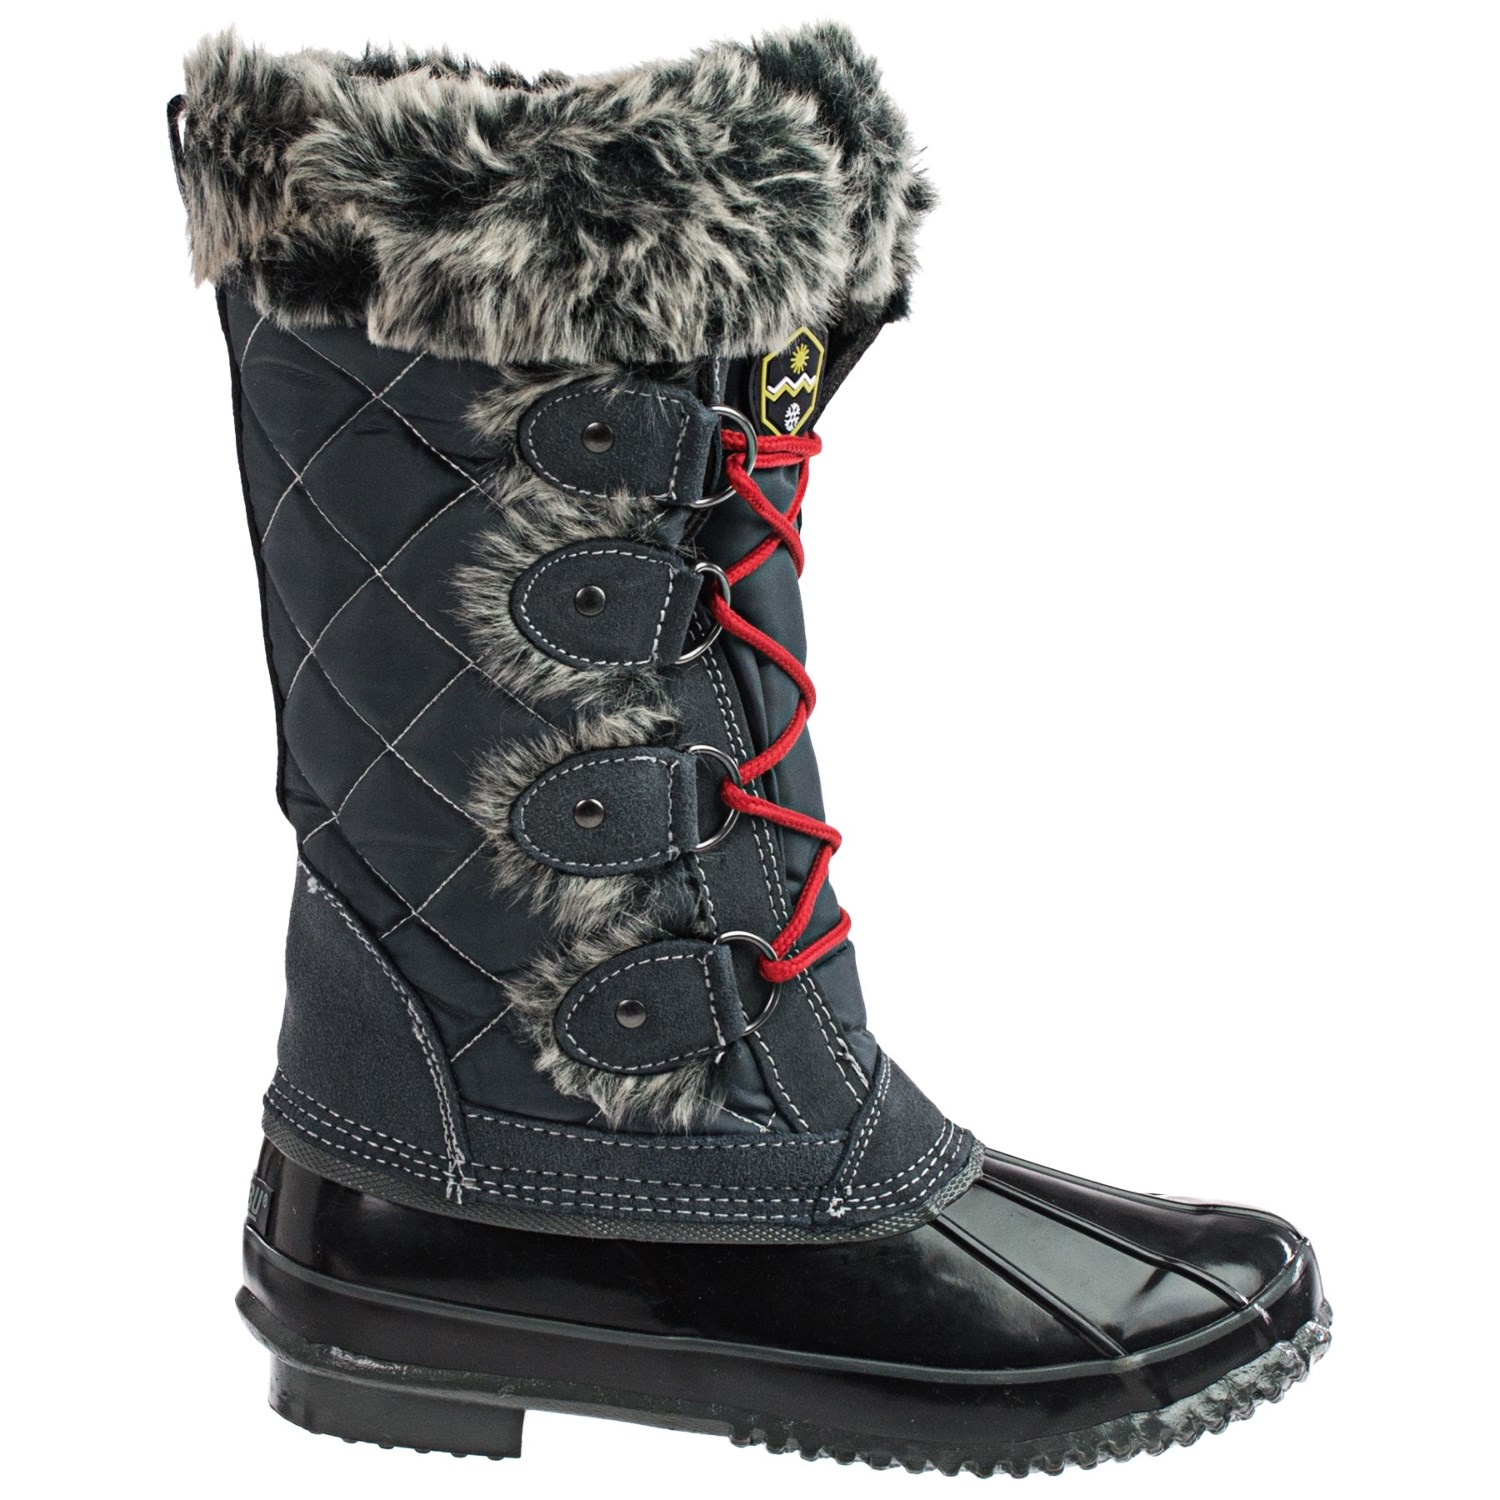 Elegant Khombu Arctic 2 Winter Pac Boots  Weatherproof LaceUps For Women